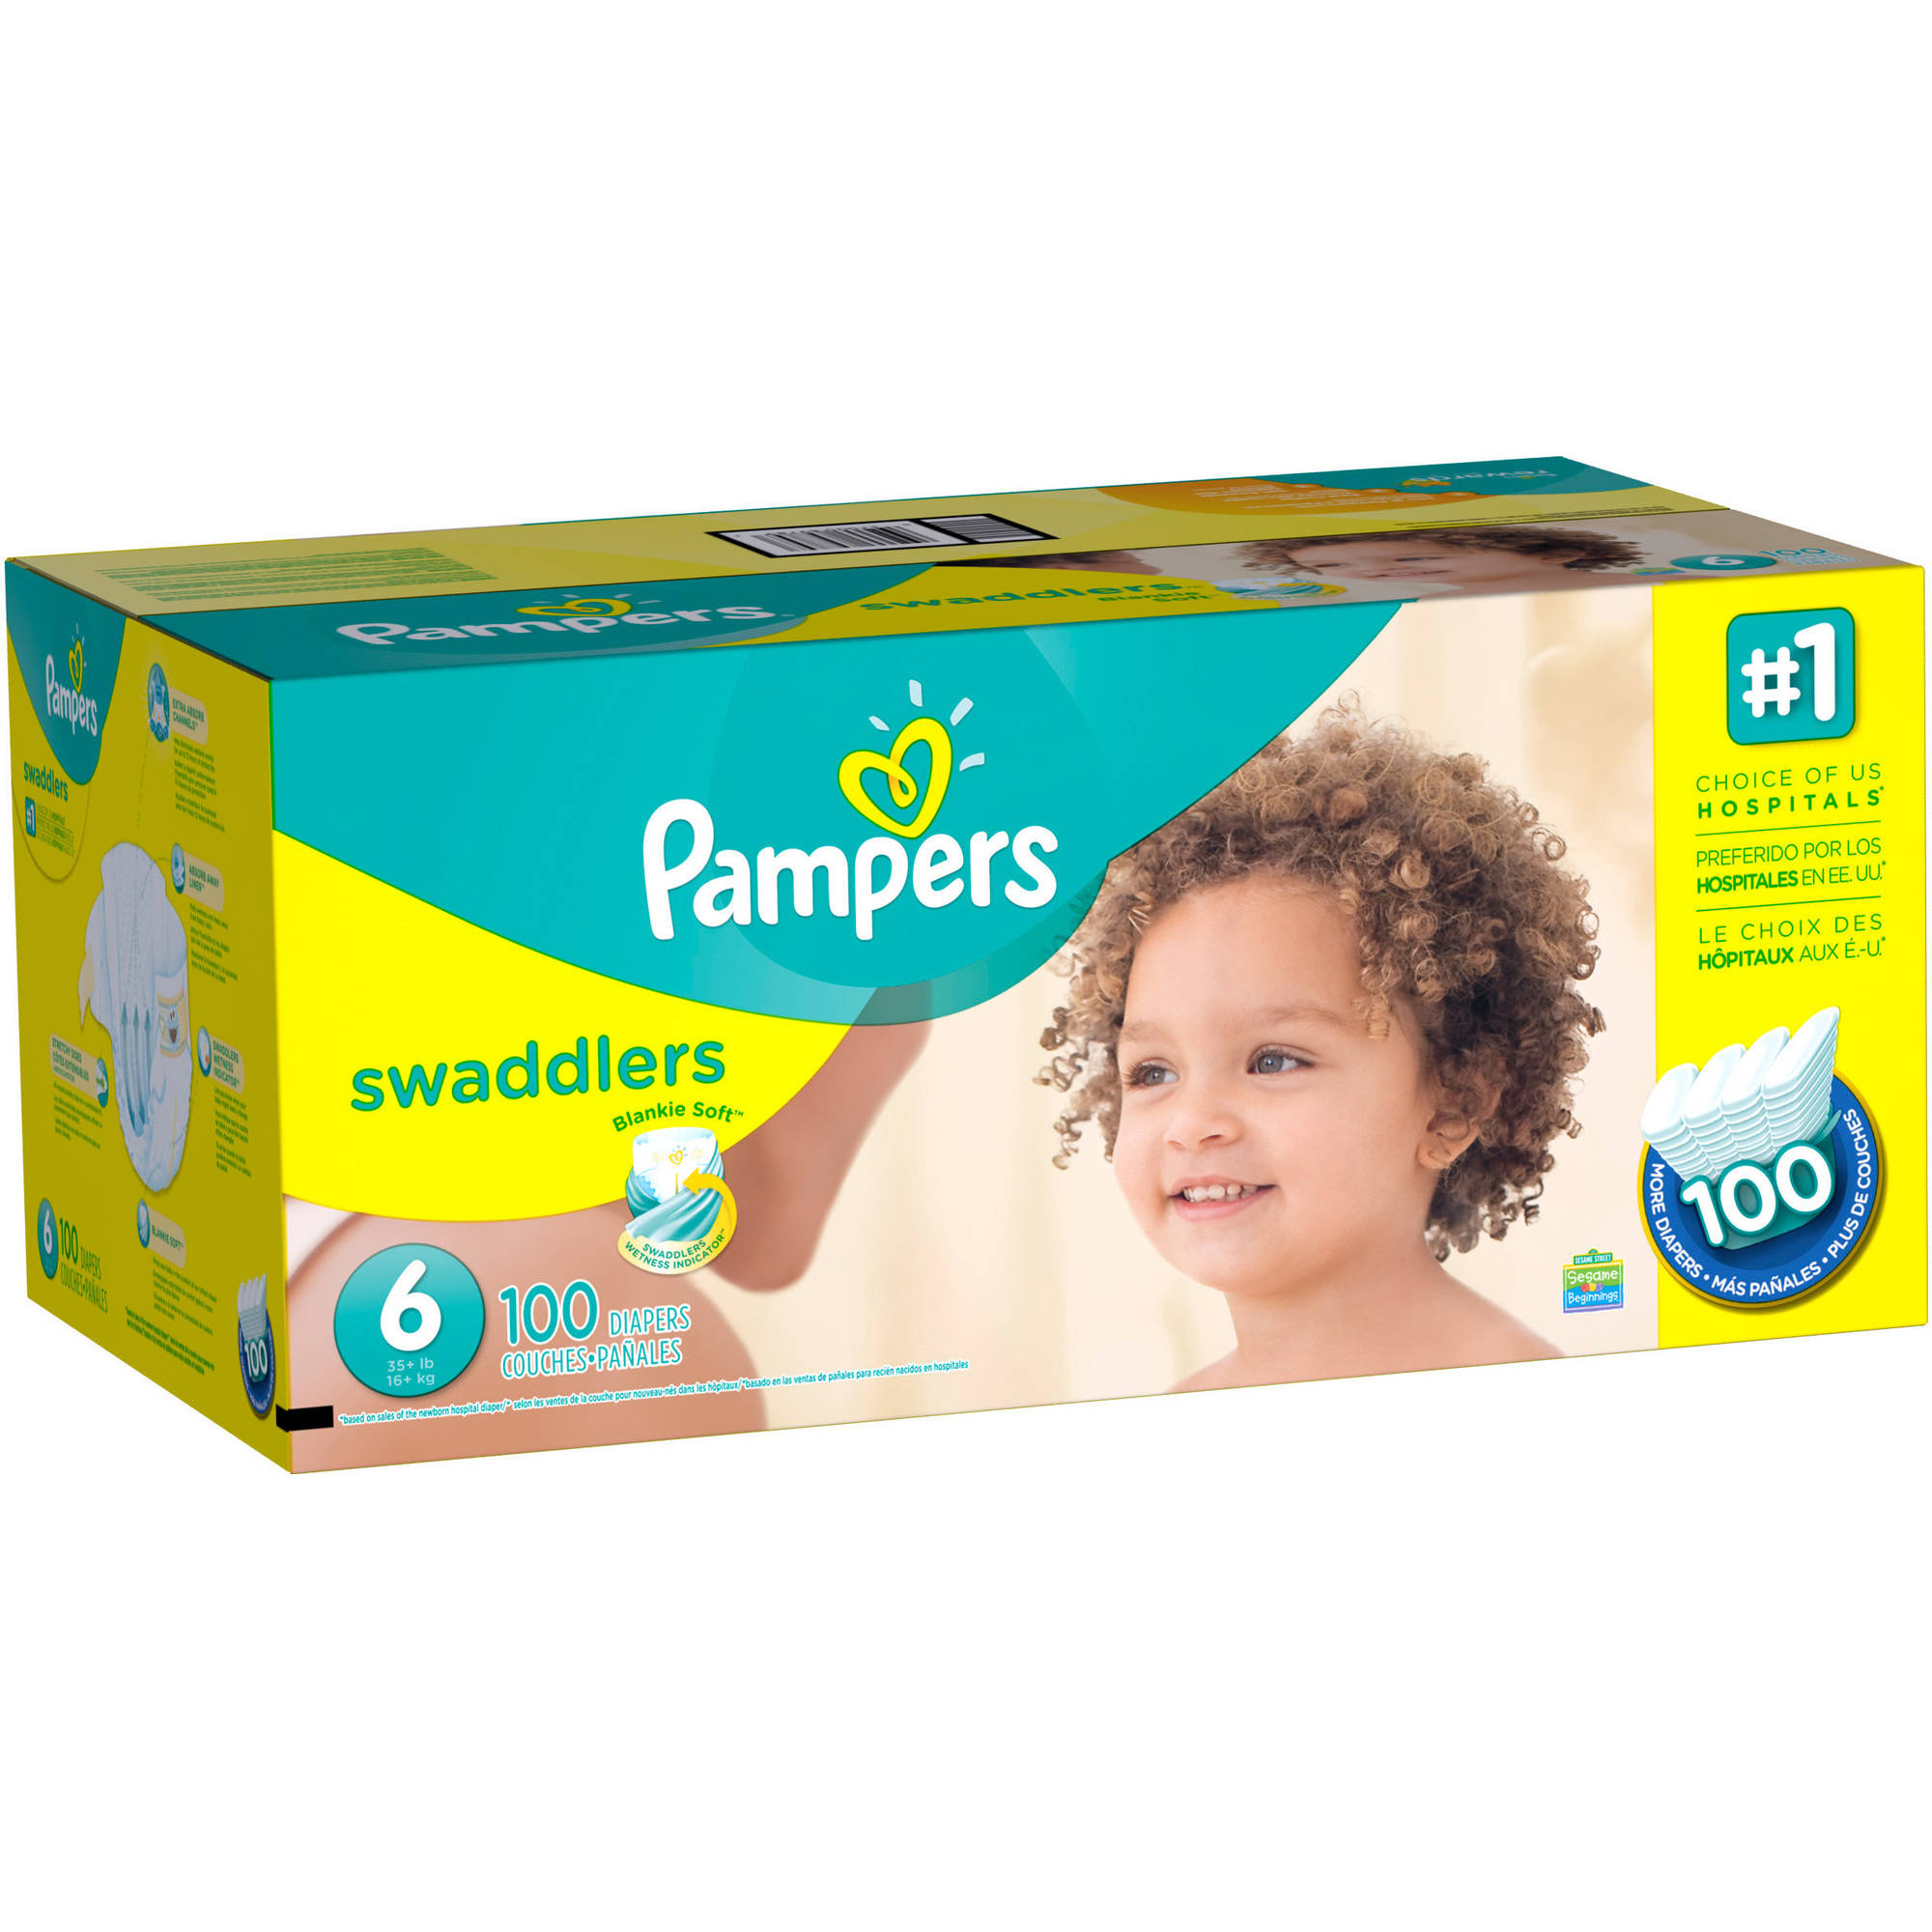 Pampers Swaddlers Diapers, Size 6, 100 Diapers